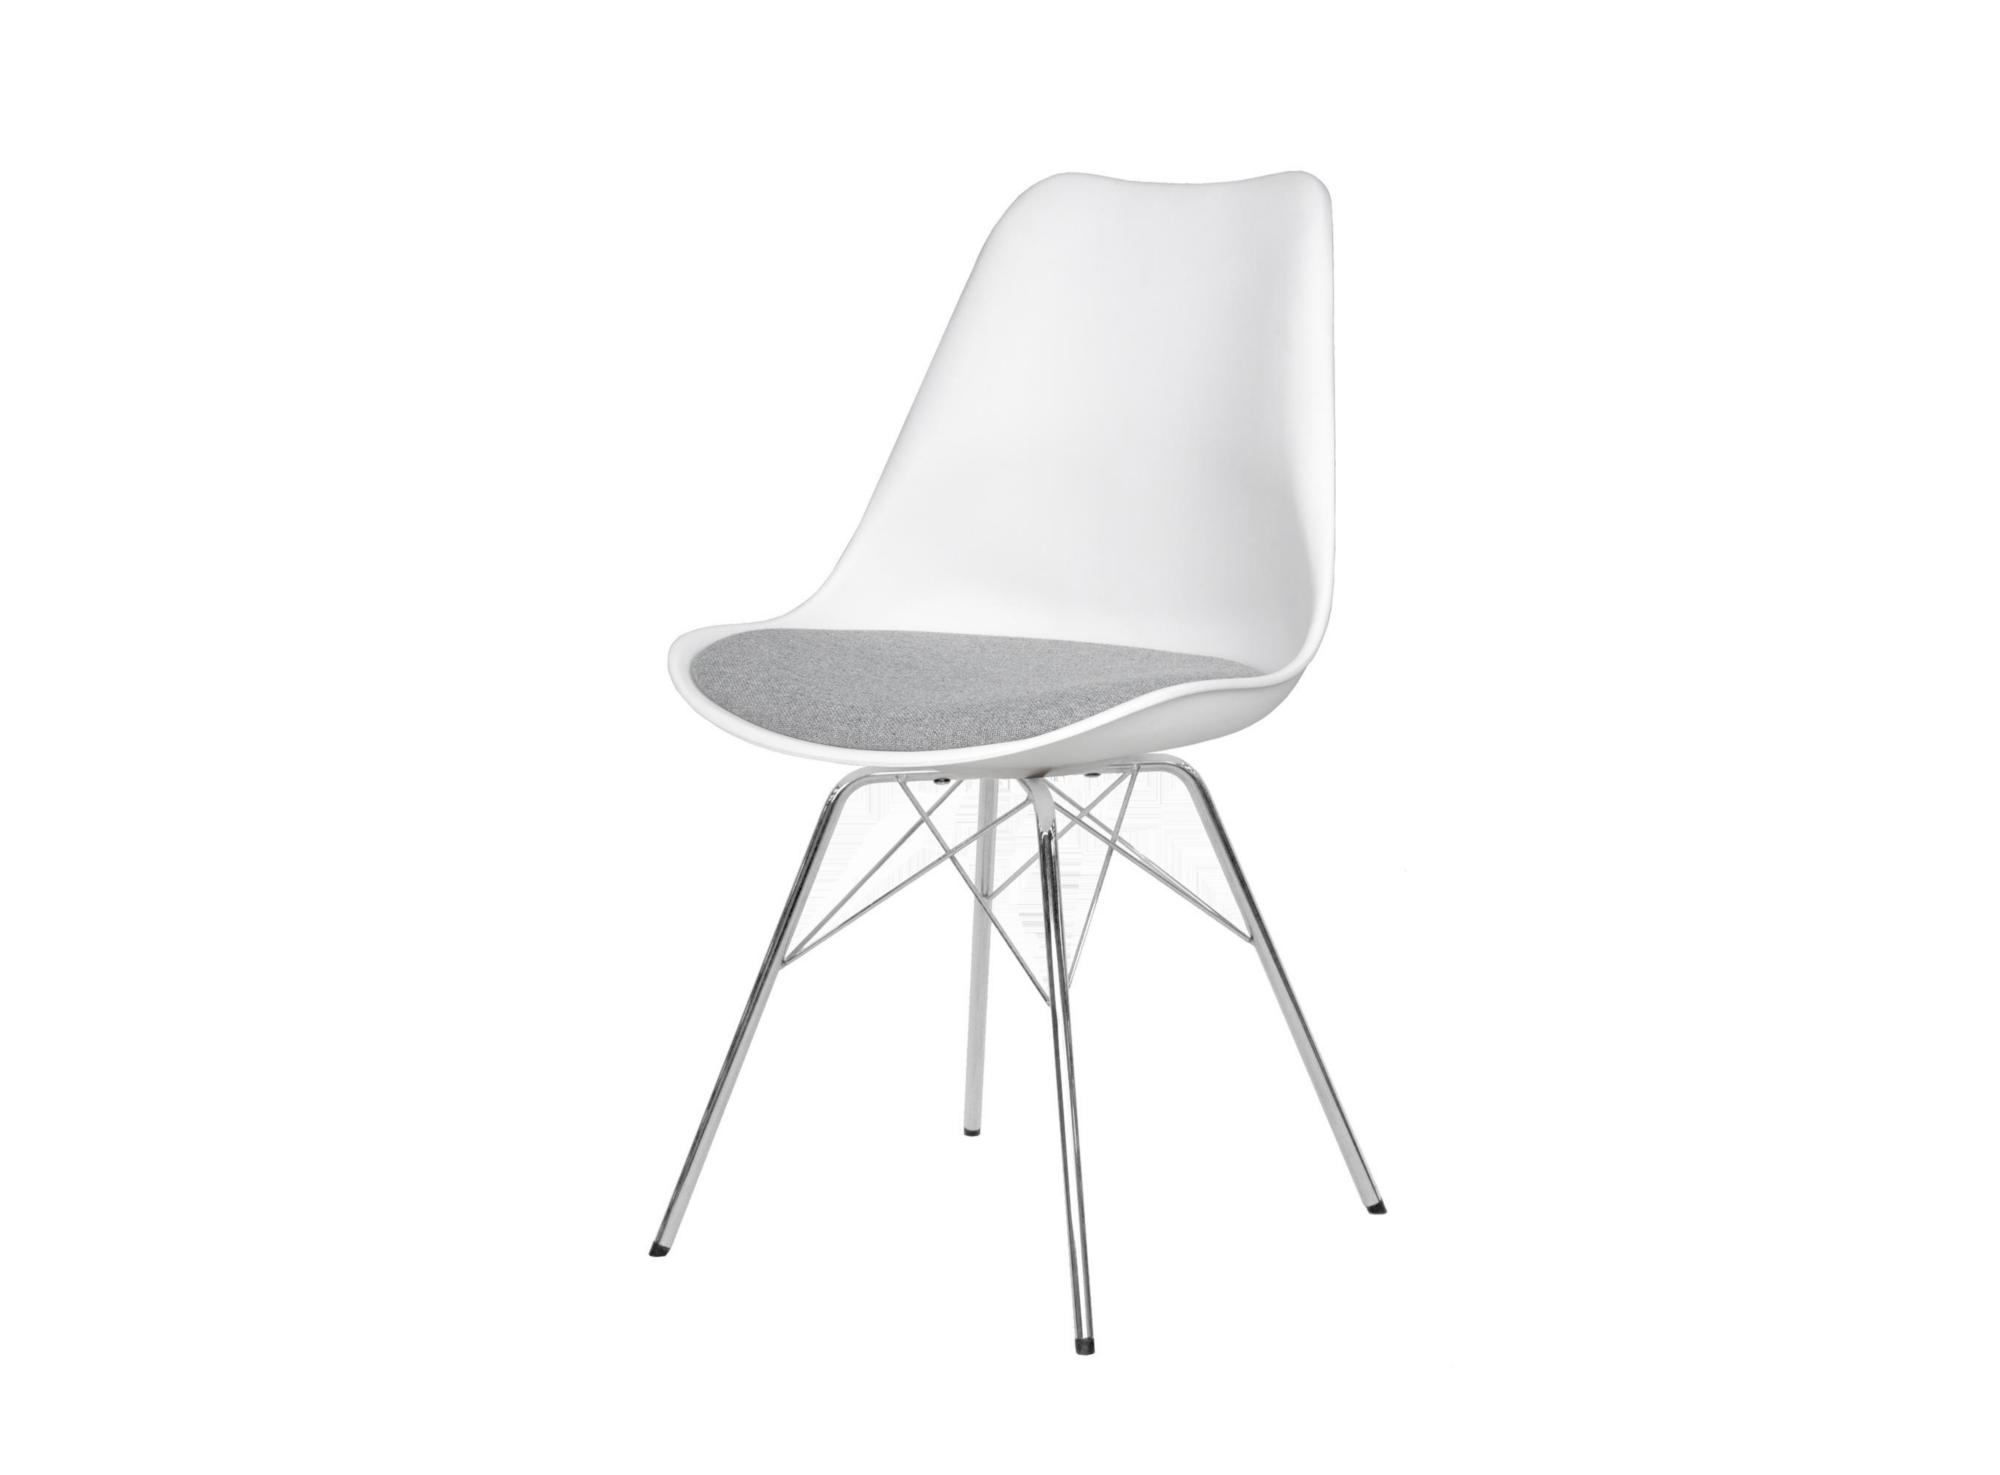 Chaise blanche assise grise pieds acier chrome   Fly